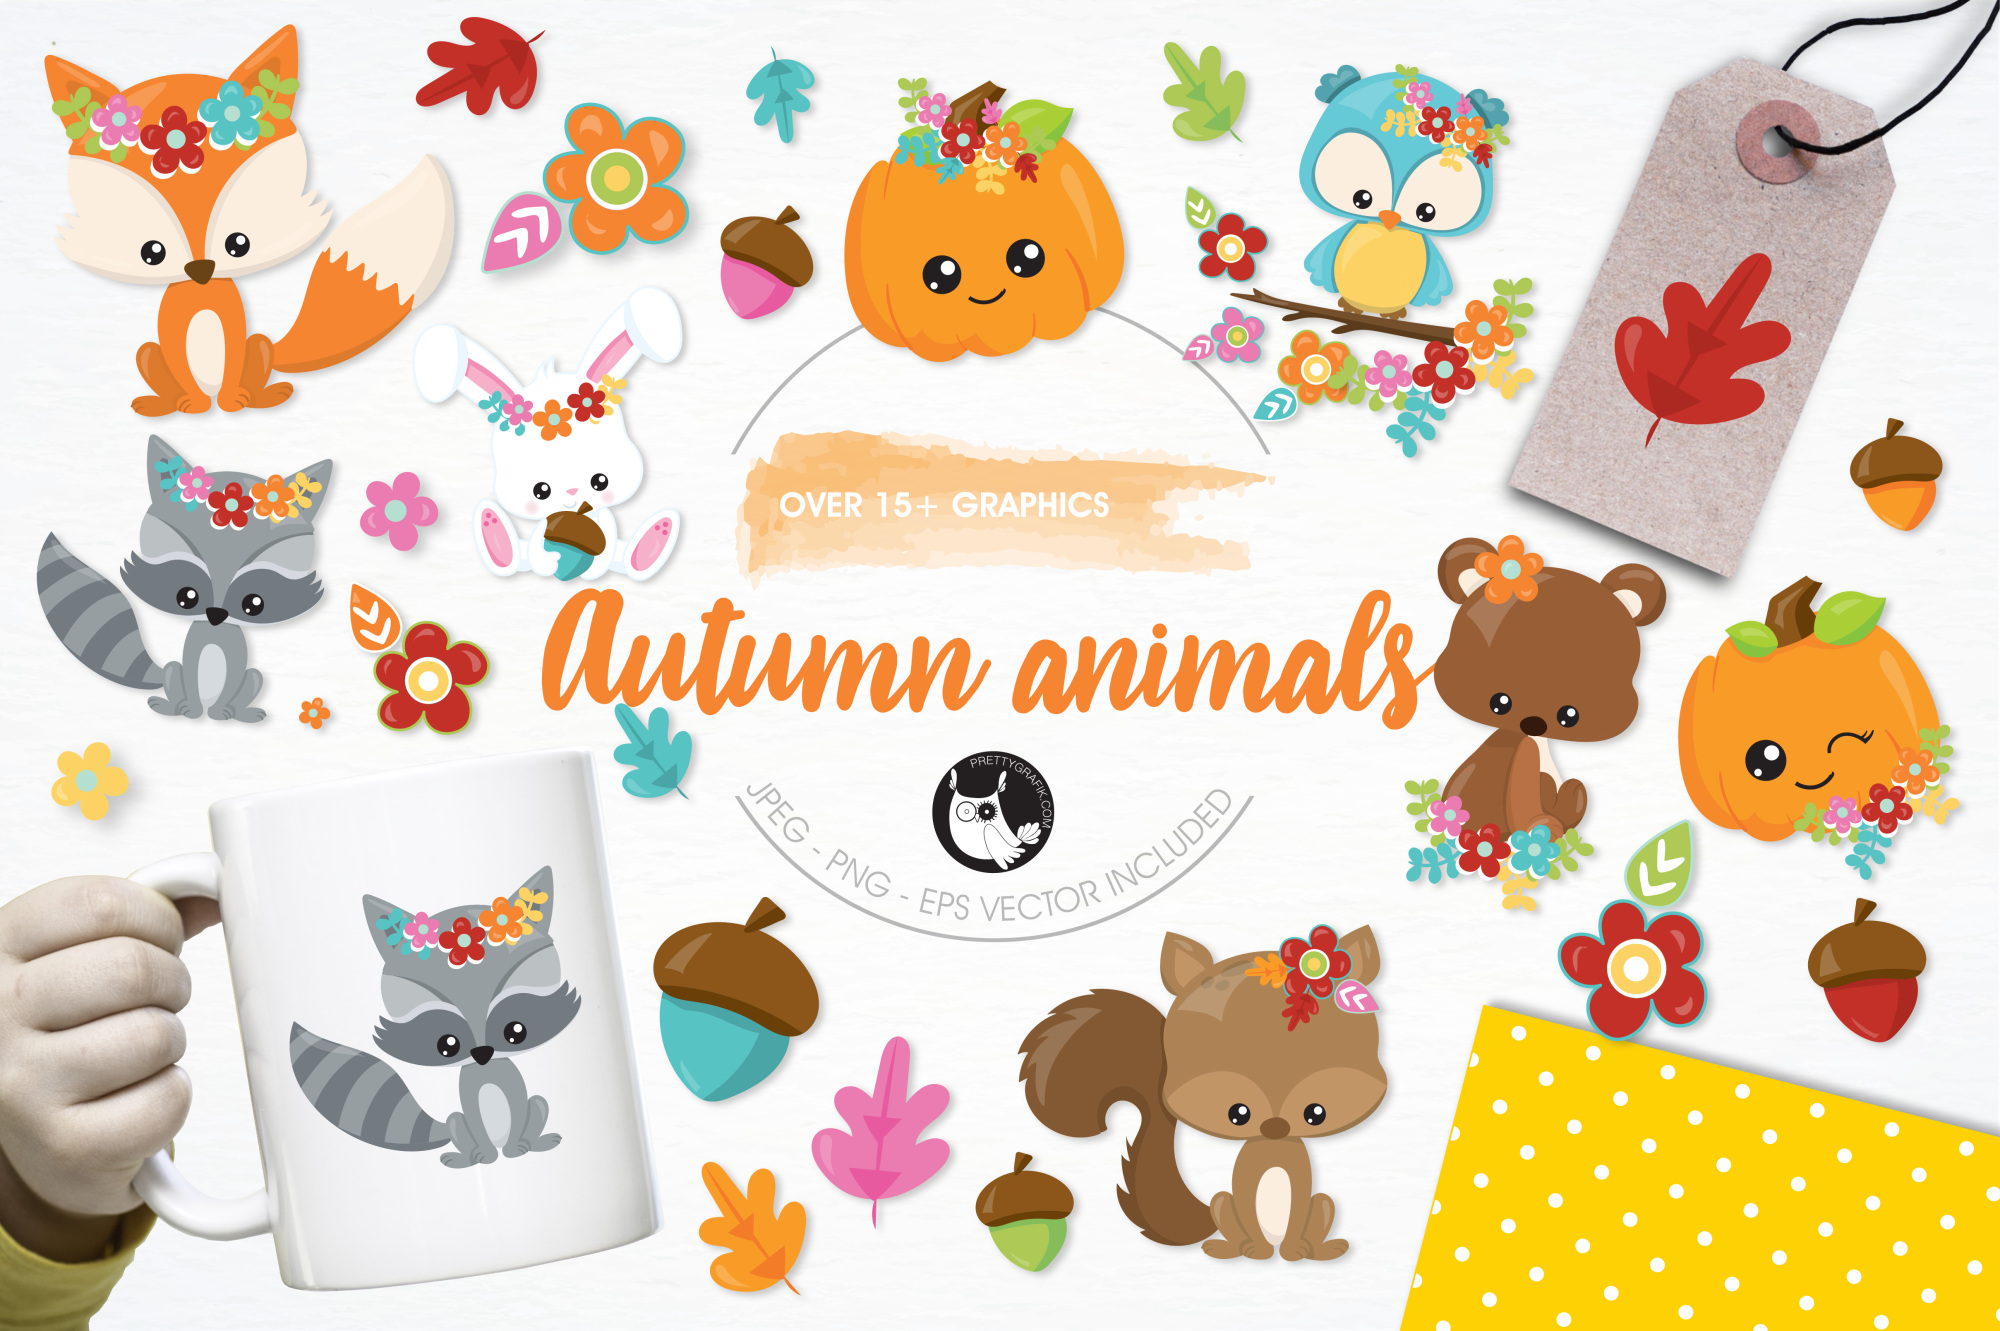 Auntumn Animals graphics and illustrations example image 1